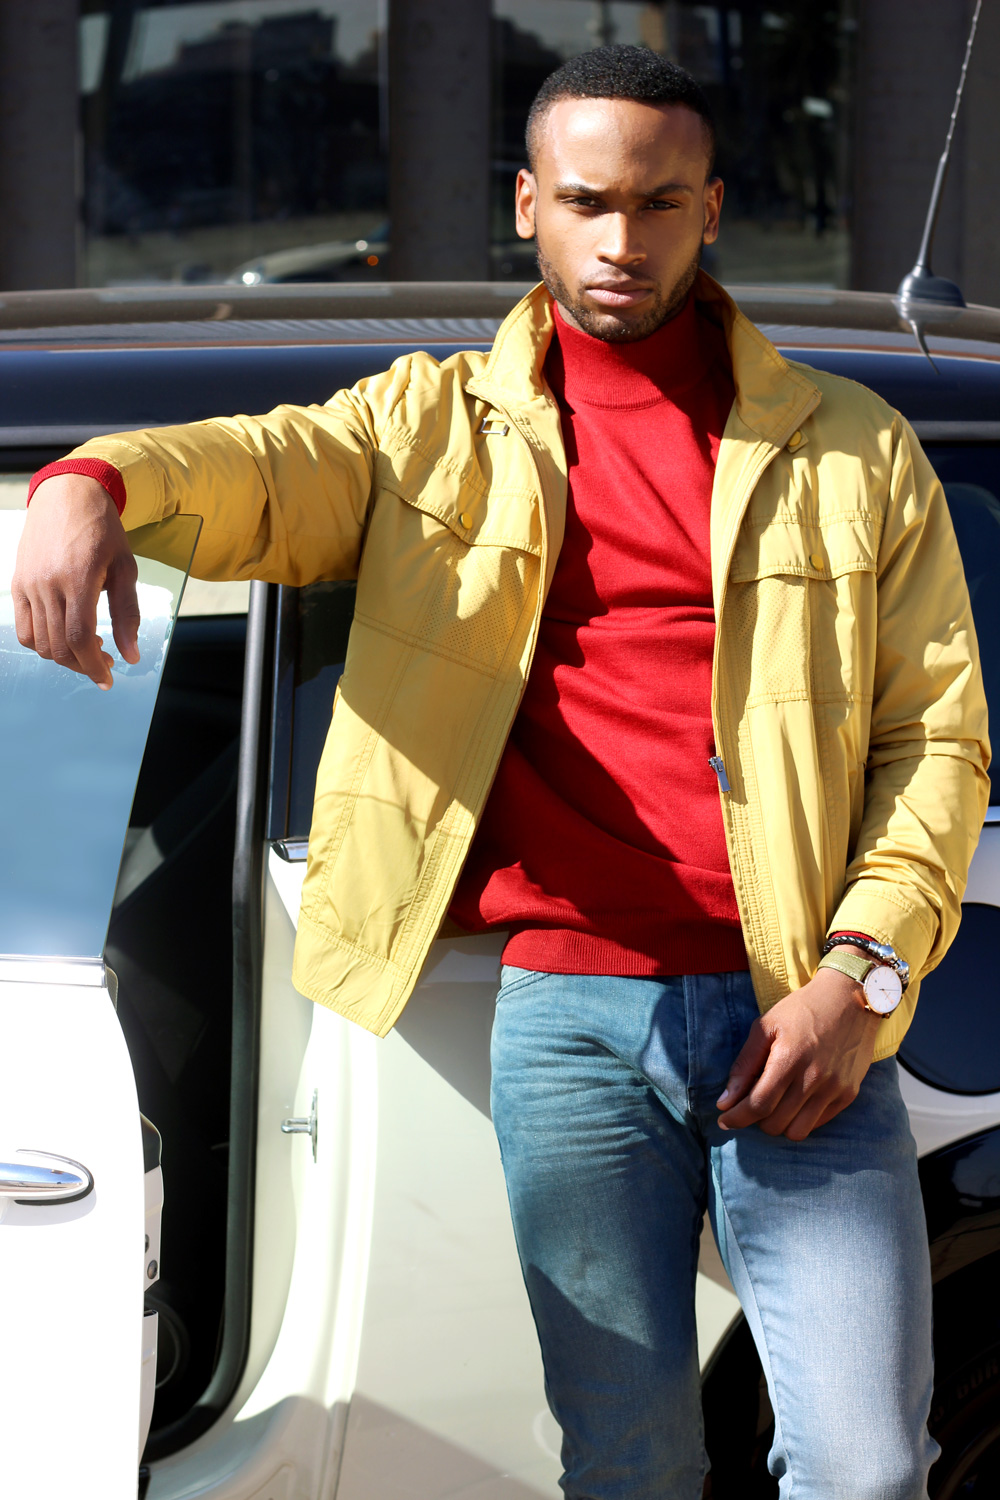 Jacket, Turtle Neck & Pants by SIMONI Exclusive Menswear Collection. Watch by Wolsch SA